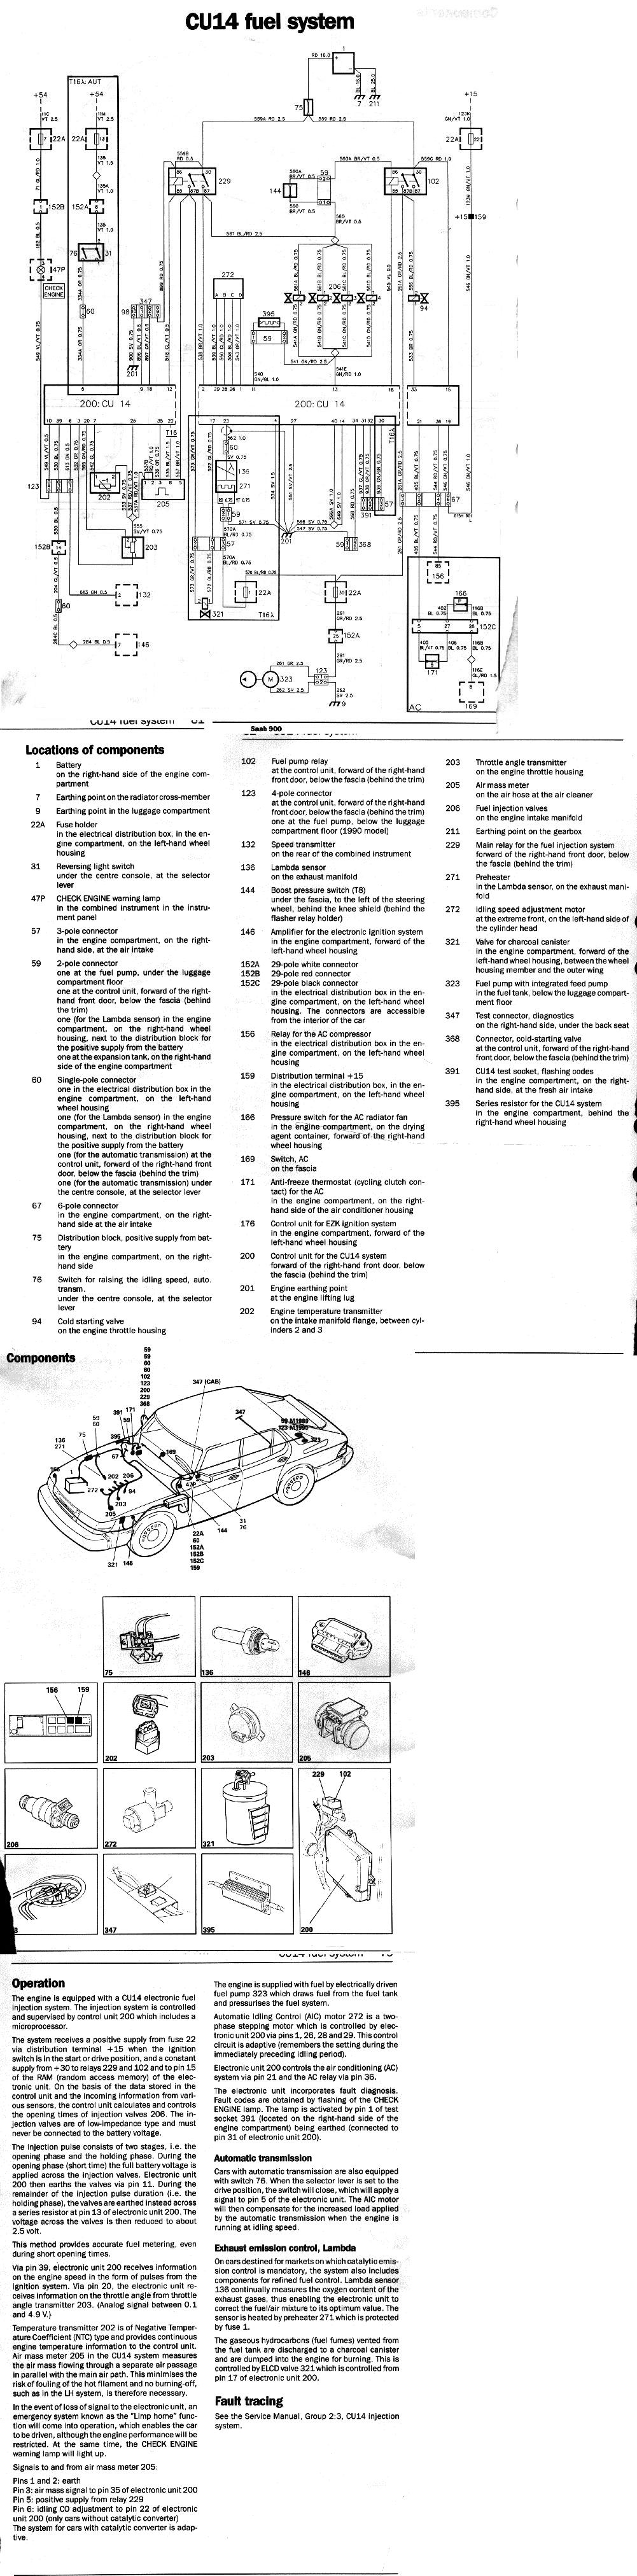 Maxresdefault together with Hyundai Elantra Engine Diagram Hyundai Accent Wiring Diagram Free Download Wiring Diagrams moreover Peugeot further  in addition . on 2003 saab 9 3 wiring diagram